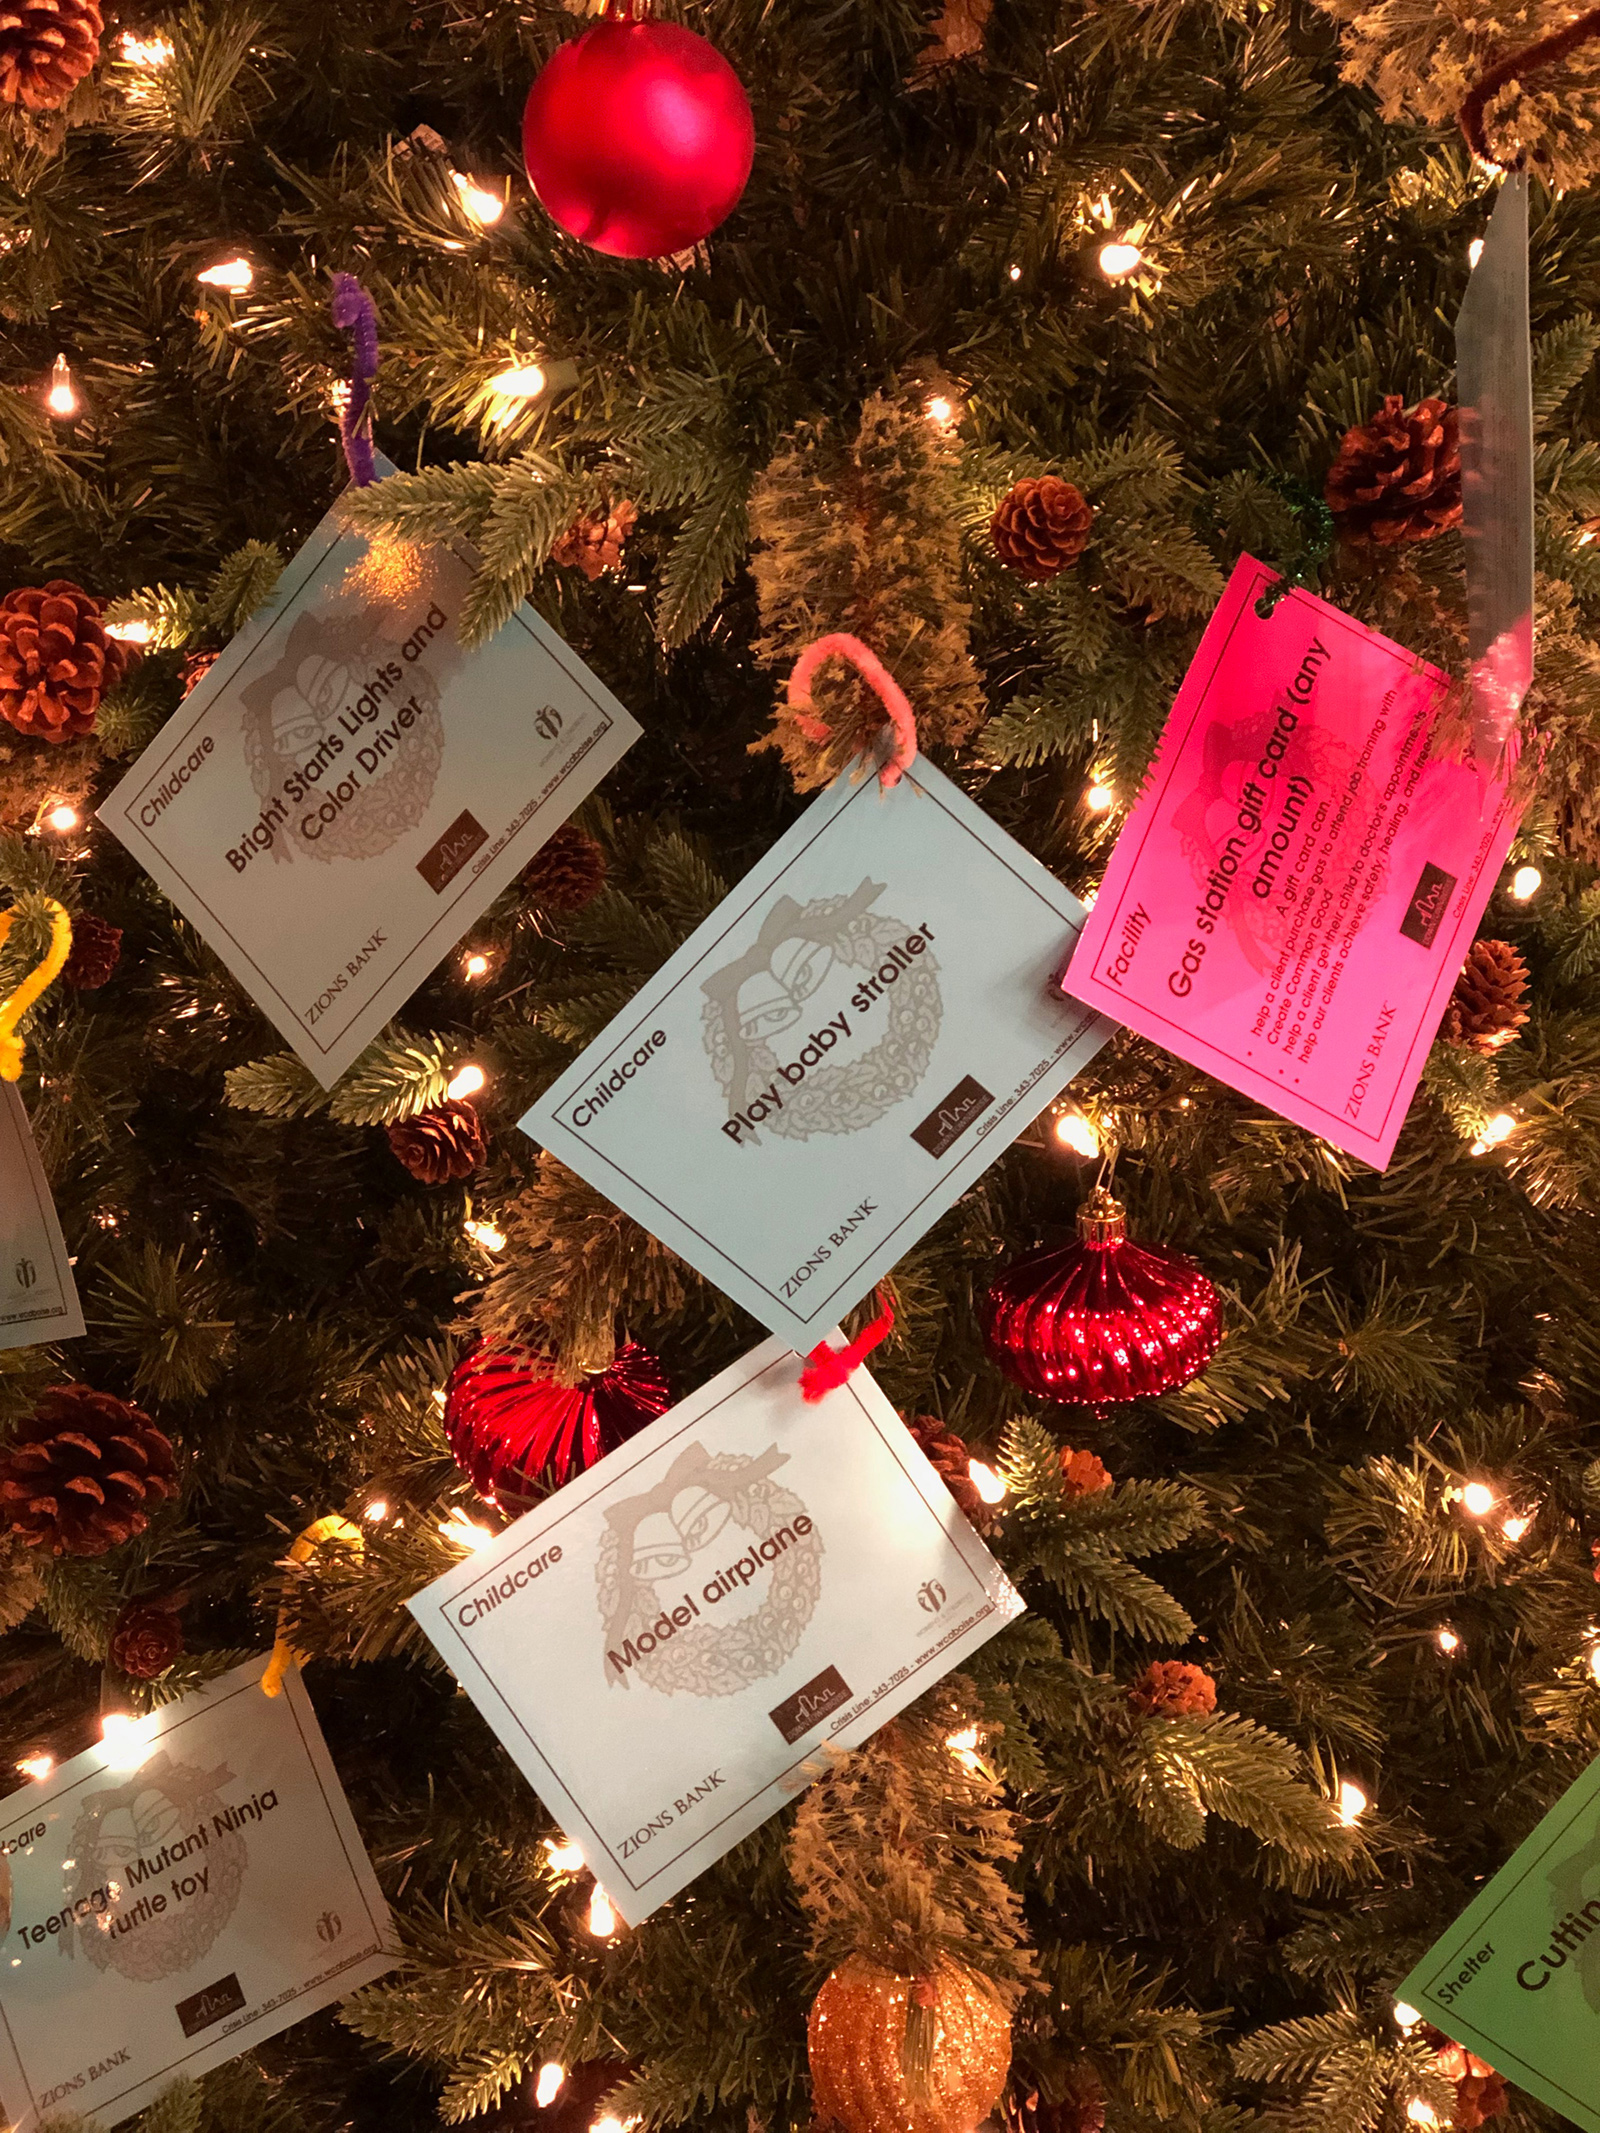 Cards on Christmas Tree